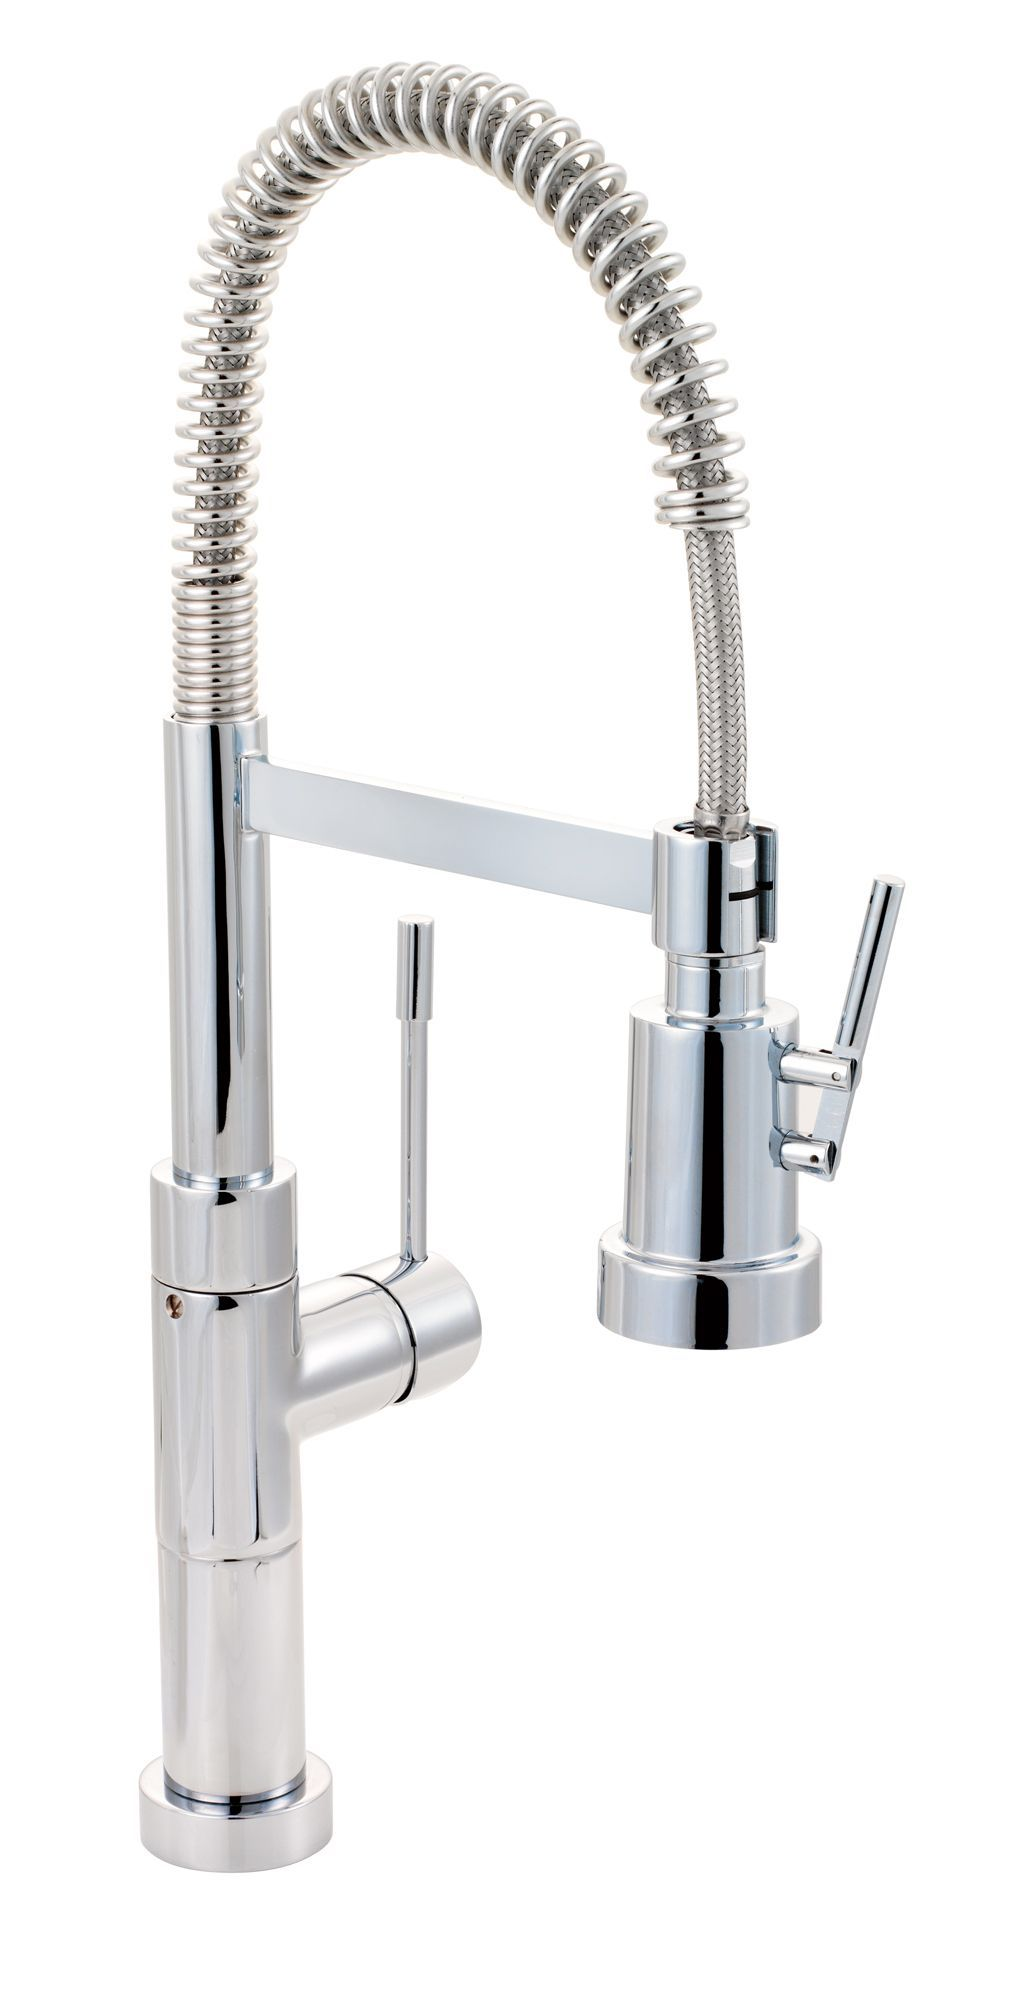 Cooke & Lewis Locone Chrome Effect Spring Neck Tap | Departments ...